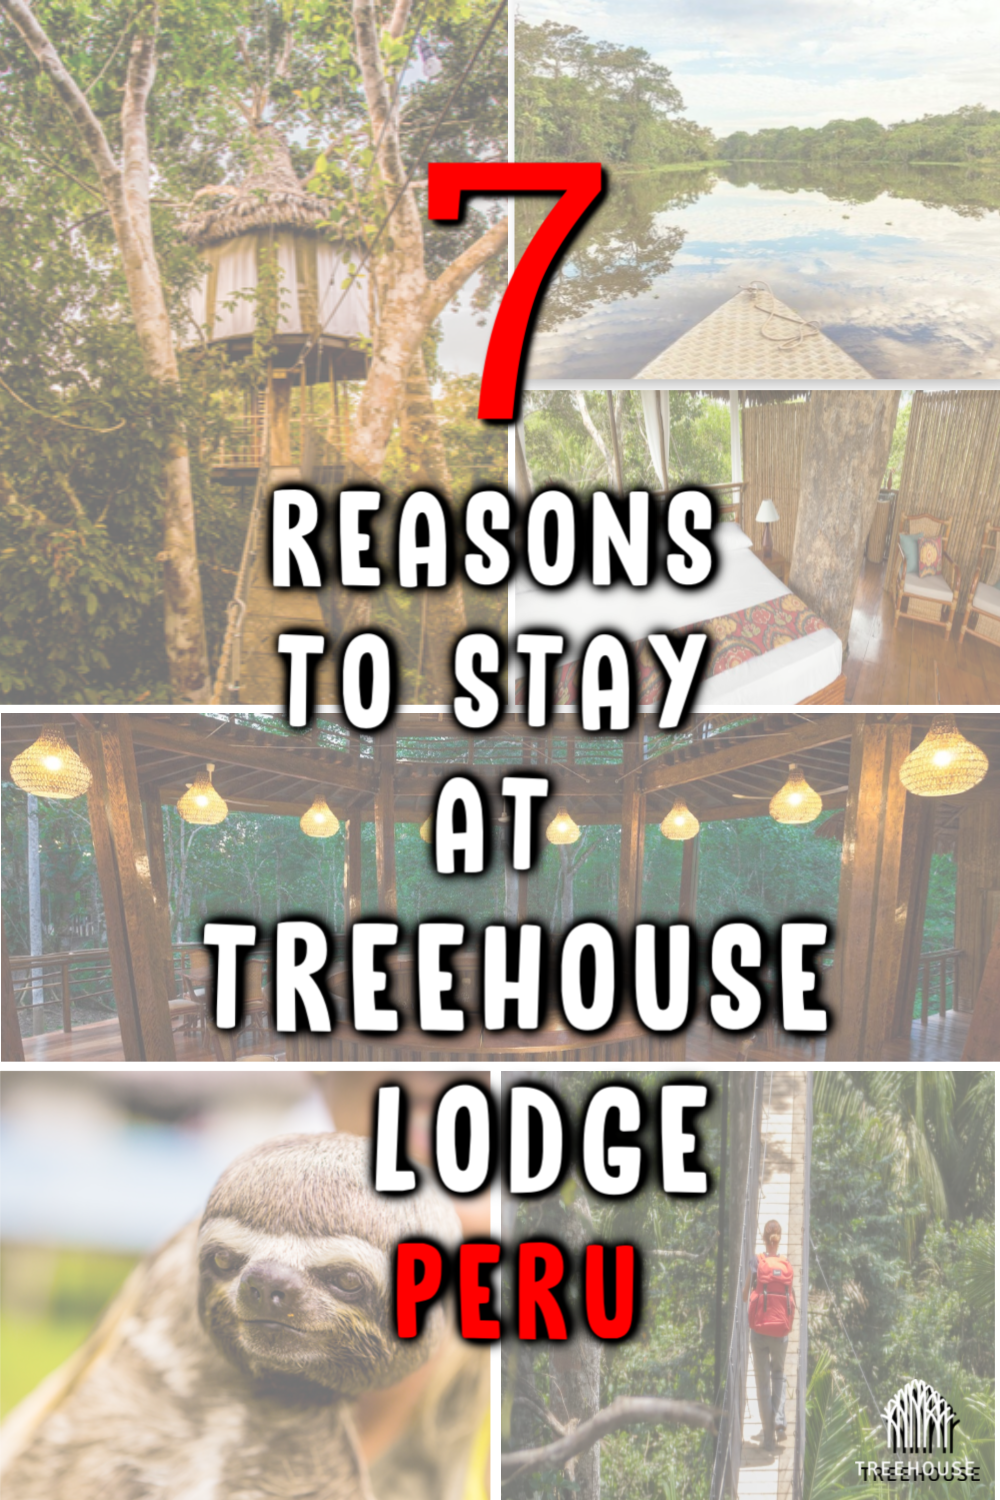 7 Reasons To Stay At Treehouse Lodge in Iquitos, Peru  #treehouse #treehouselodgeperu #treehouseresort #treehousestay #peru #amazonriver